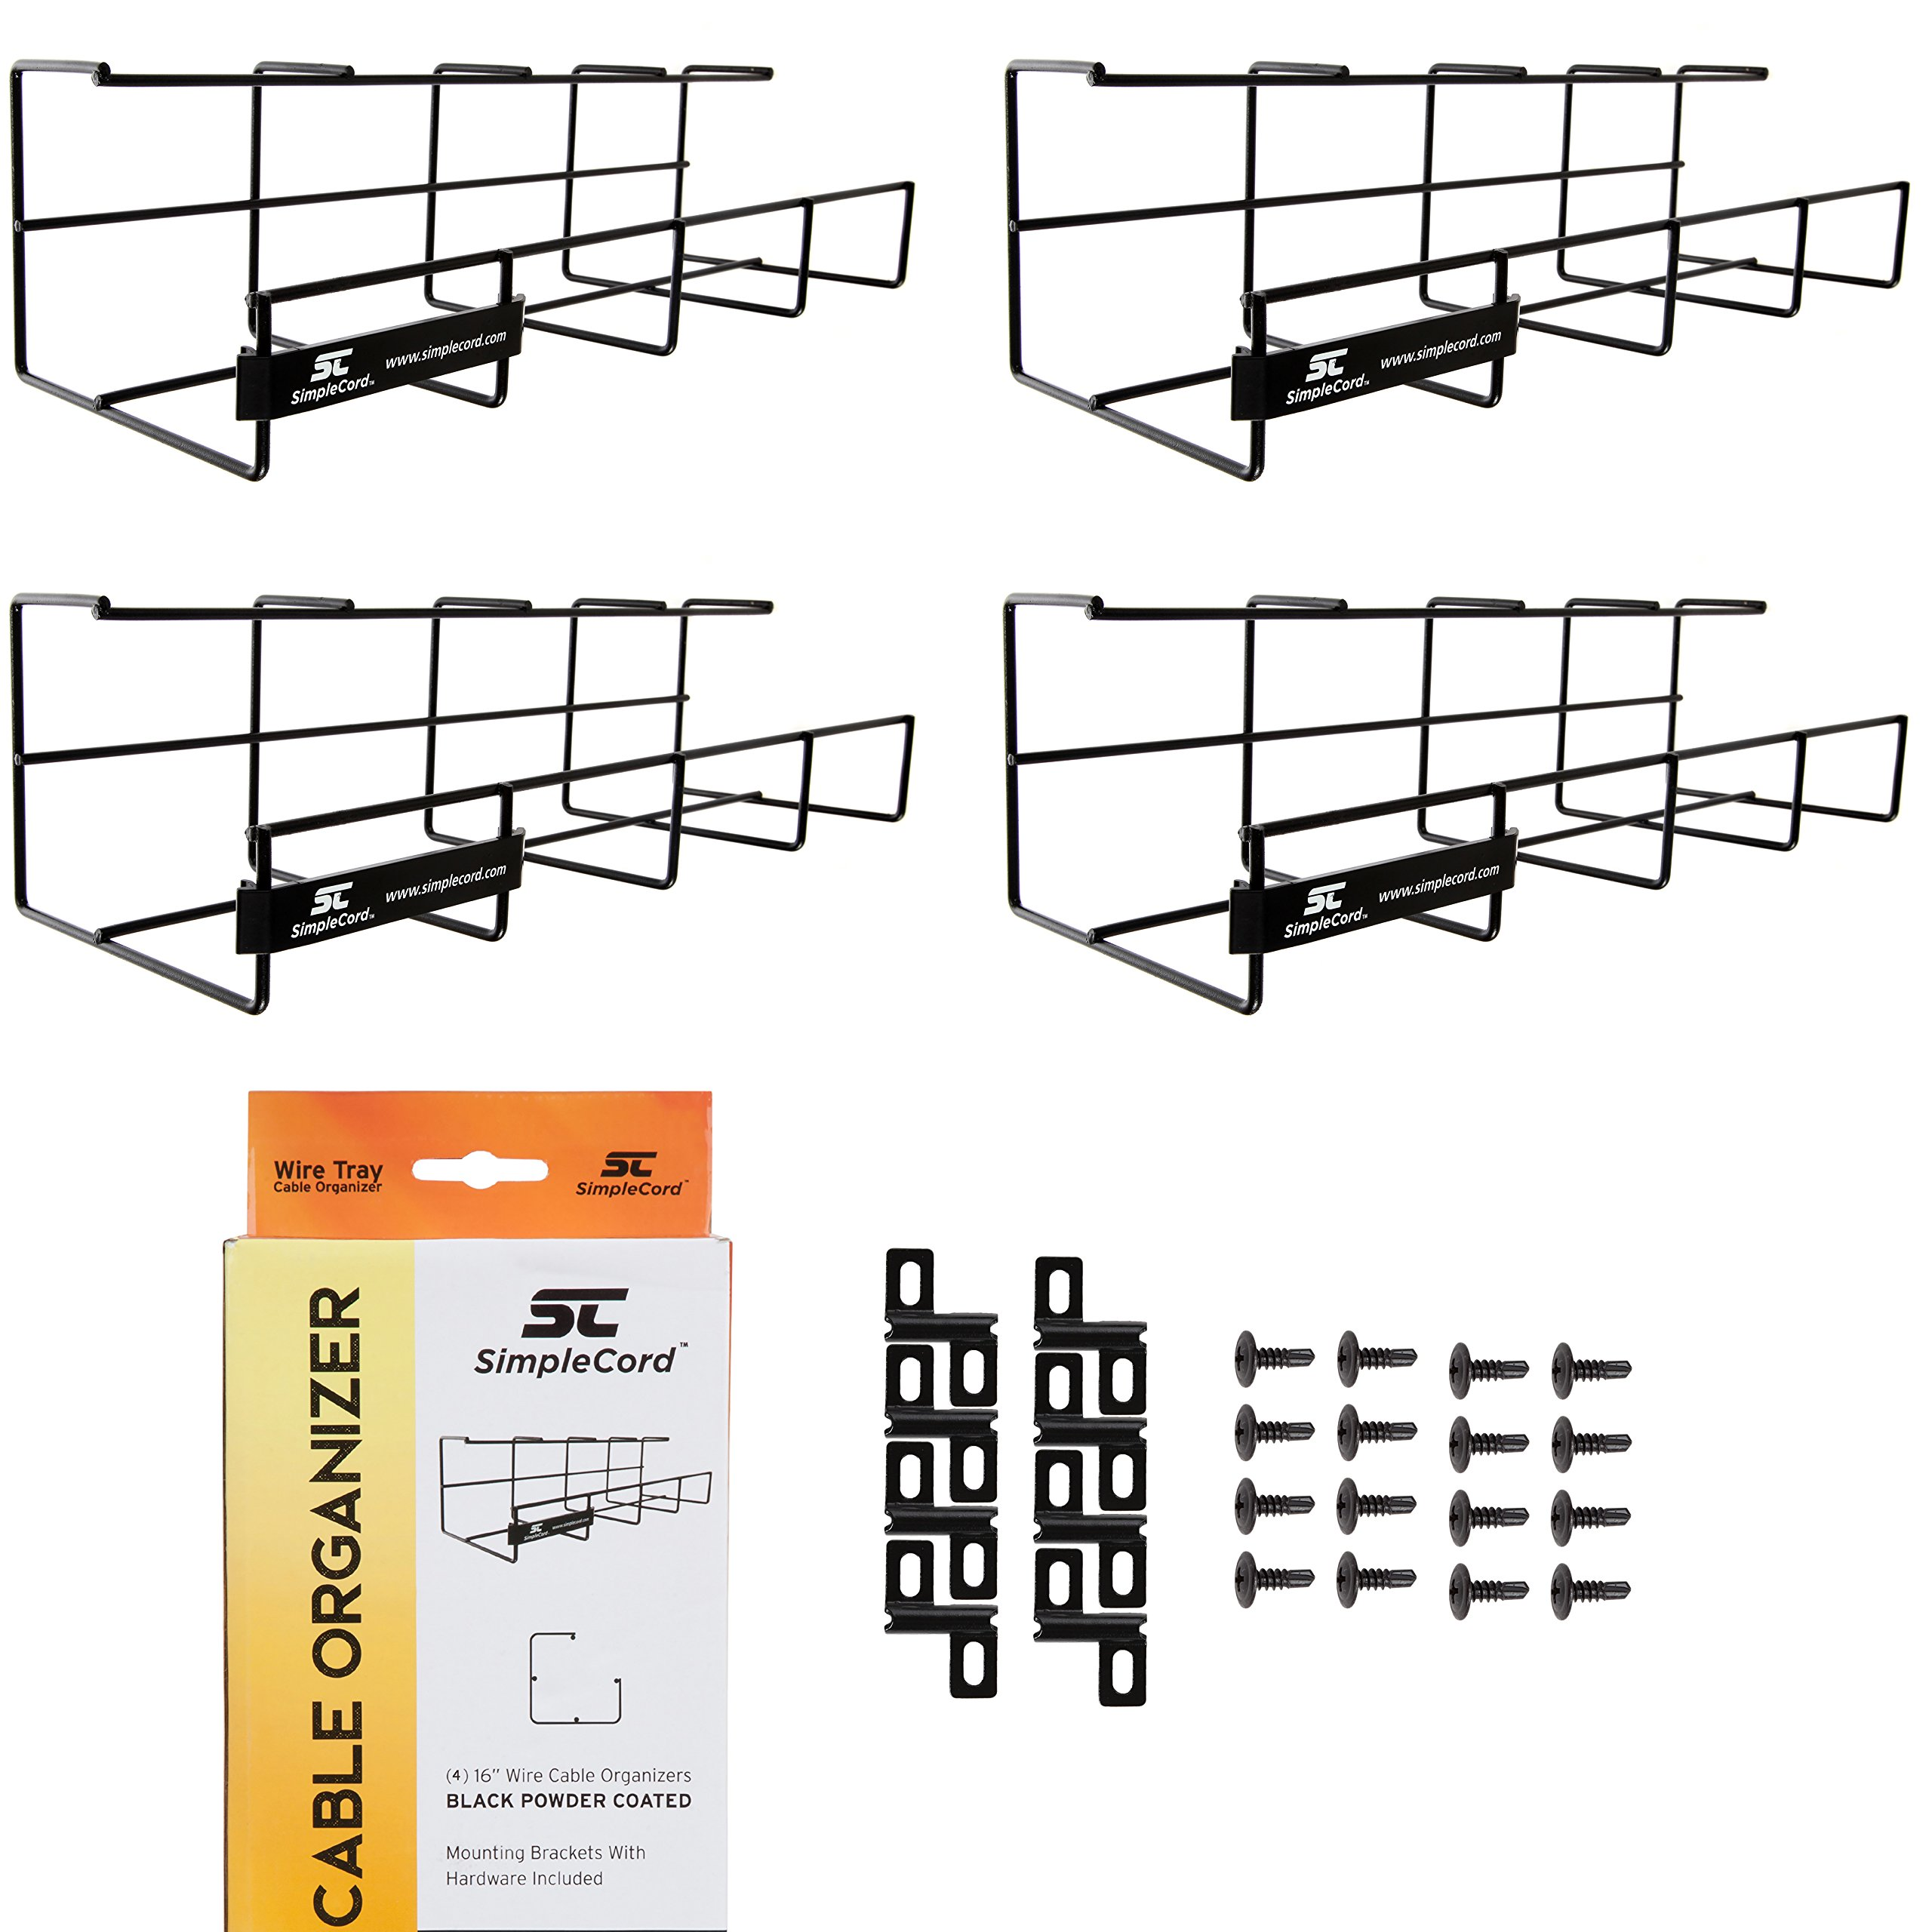 Wire Tray Desk Cable Organizer - 64'' Open Slot Raceway to Hold Cables, Cords, or Wires on Desks - Office Cable Management (2 Pack)